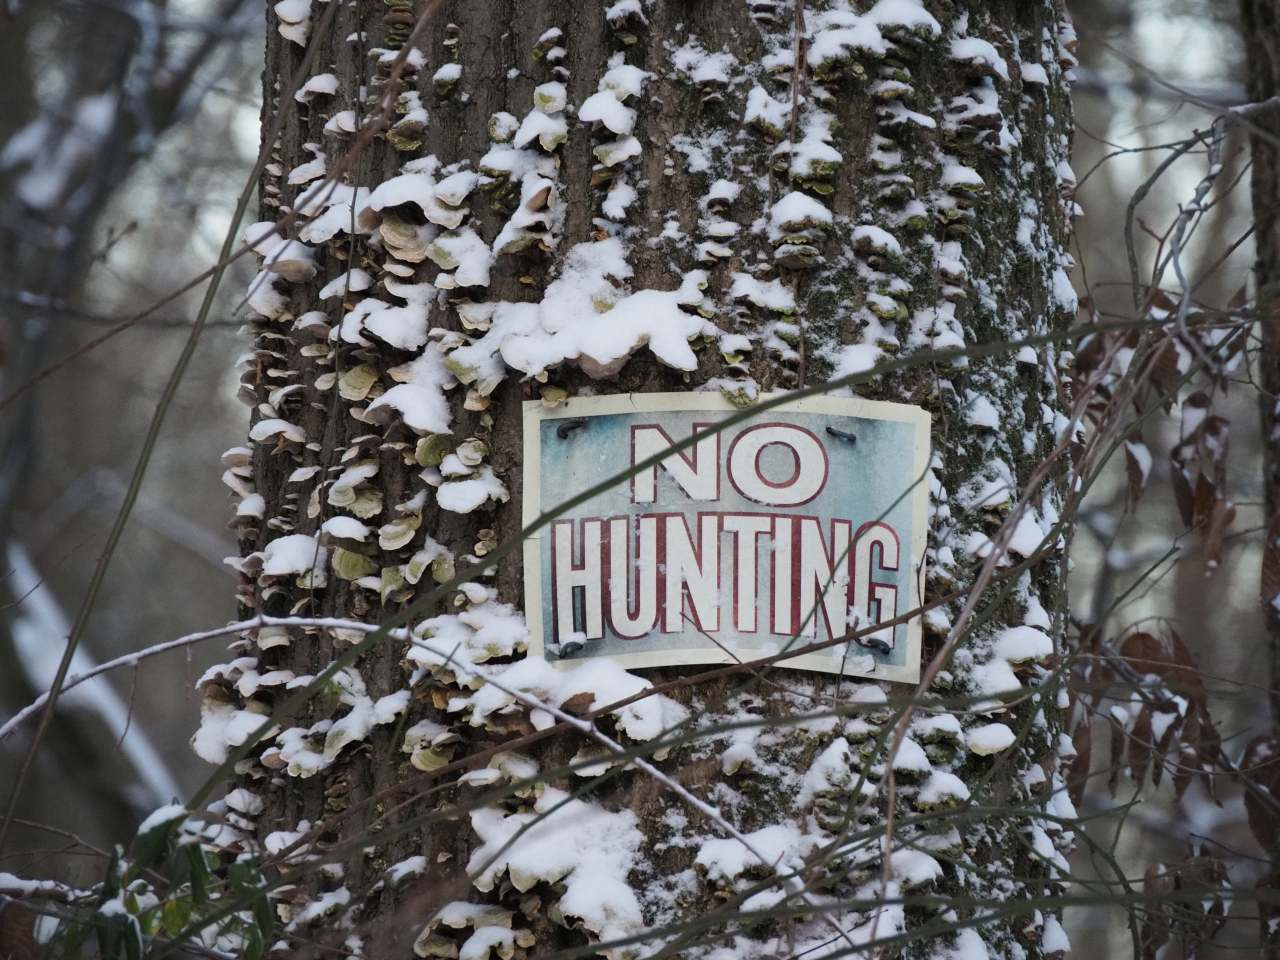 No hunting sign on mushroomed tree, now snowy.